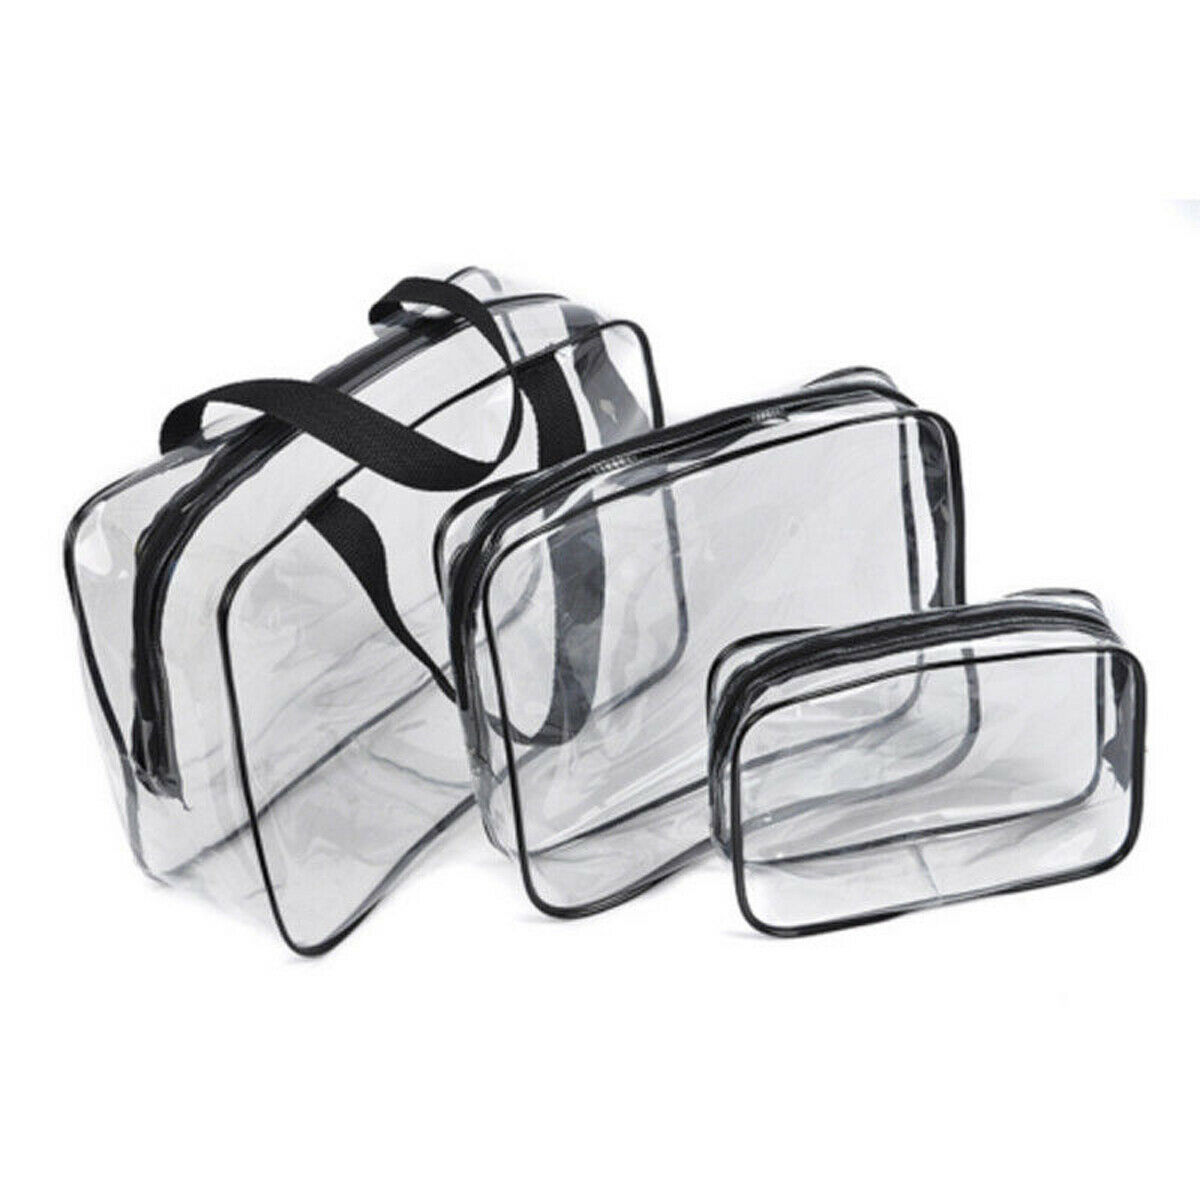 family Household 3PCS Travel Cosmetic Makeup Bag Toiletry Case Hanging Wash Organizer portable Storage Bags in Cosmetic Bags Cases from Luggage Bags